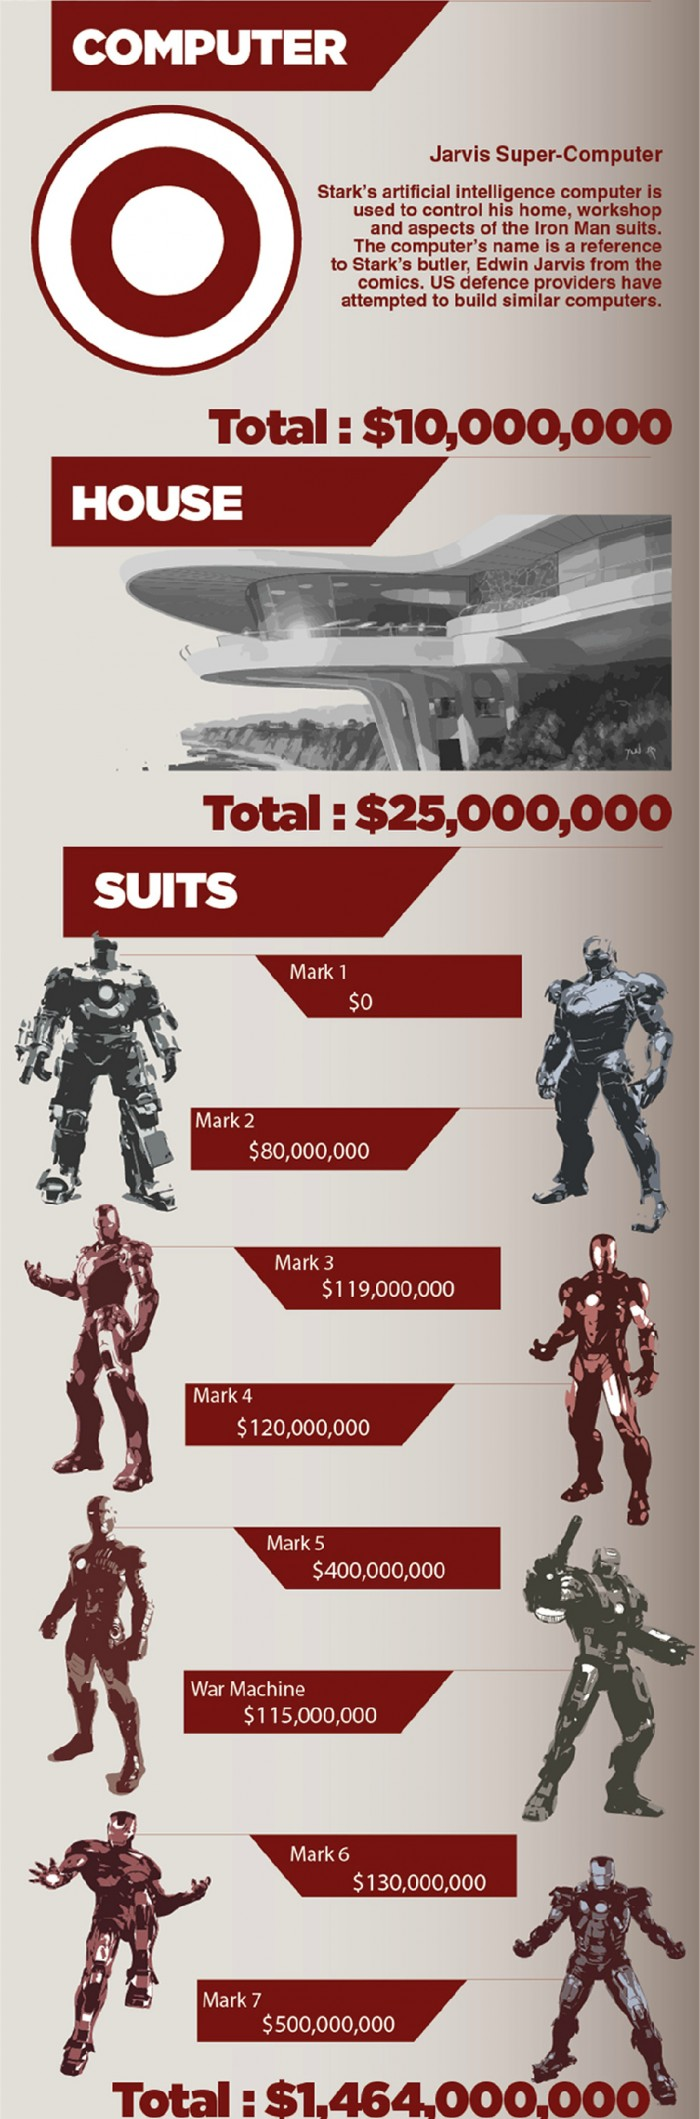 tempThe-Cost-of-Being-Ironman3.jpg (988 KB)